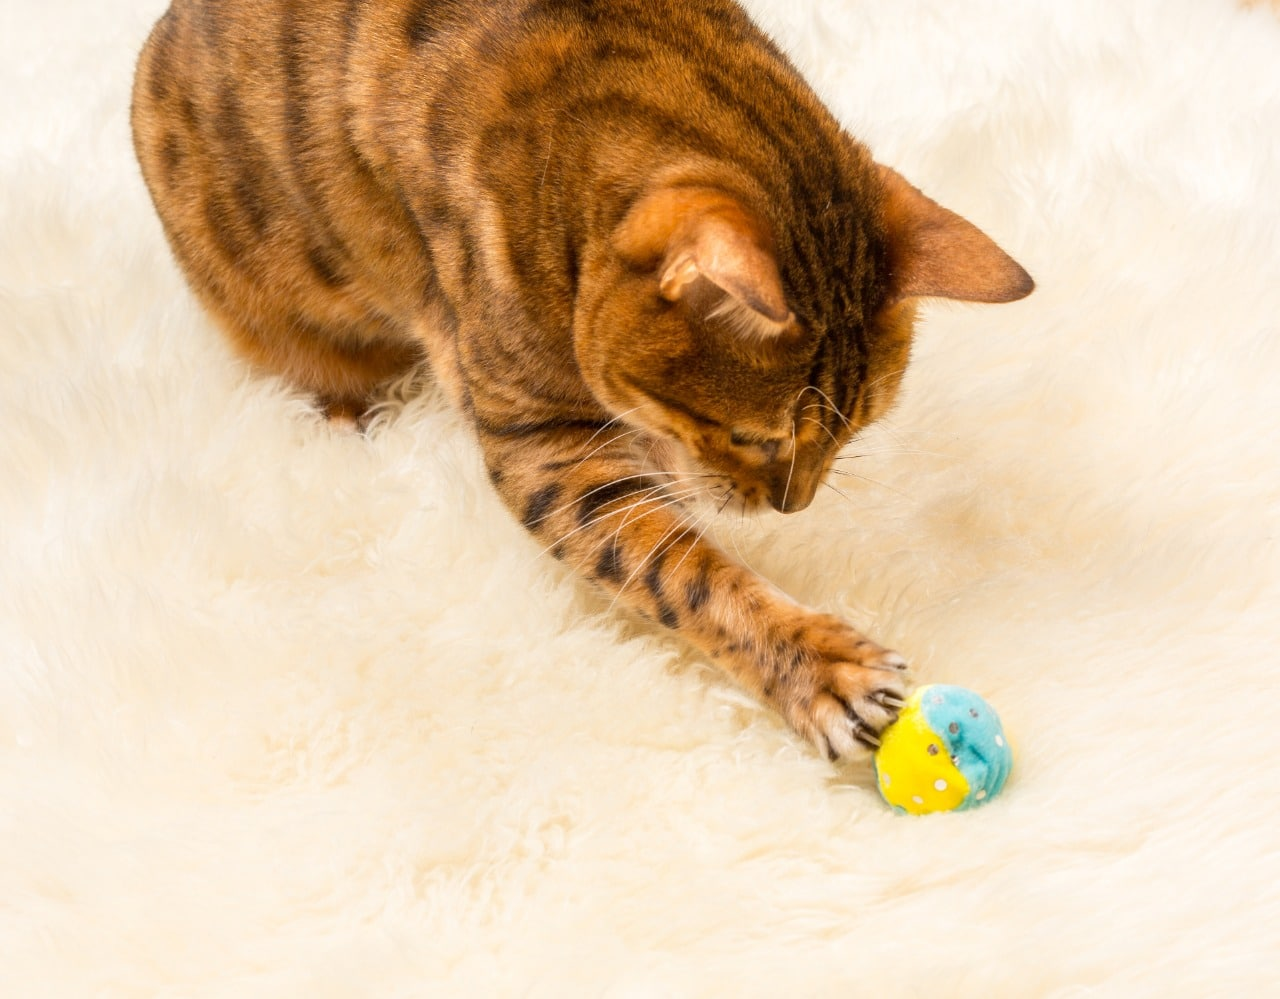 Orange and brown bengal kitten cat playing with ball on a wool rug